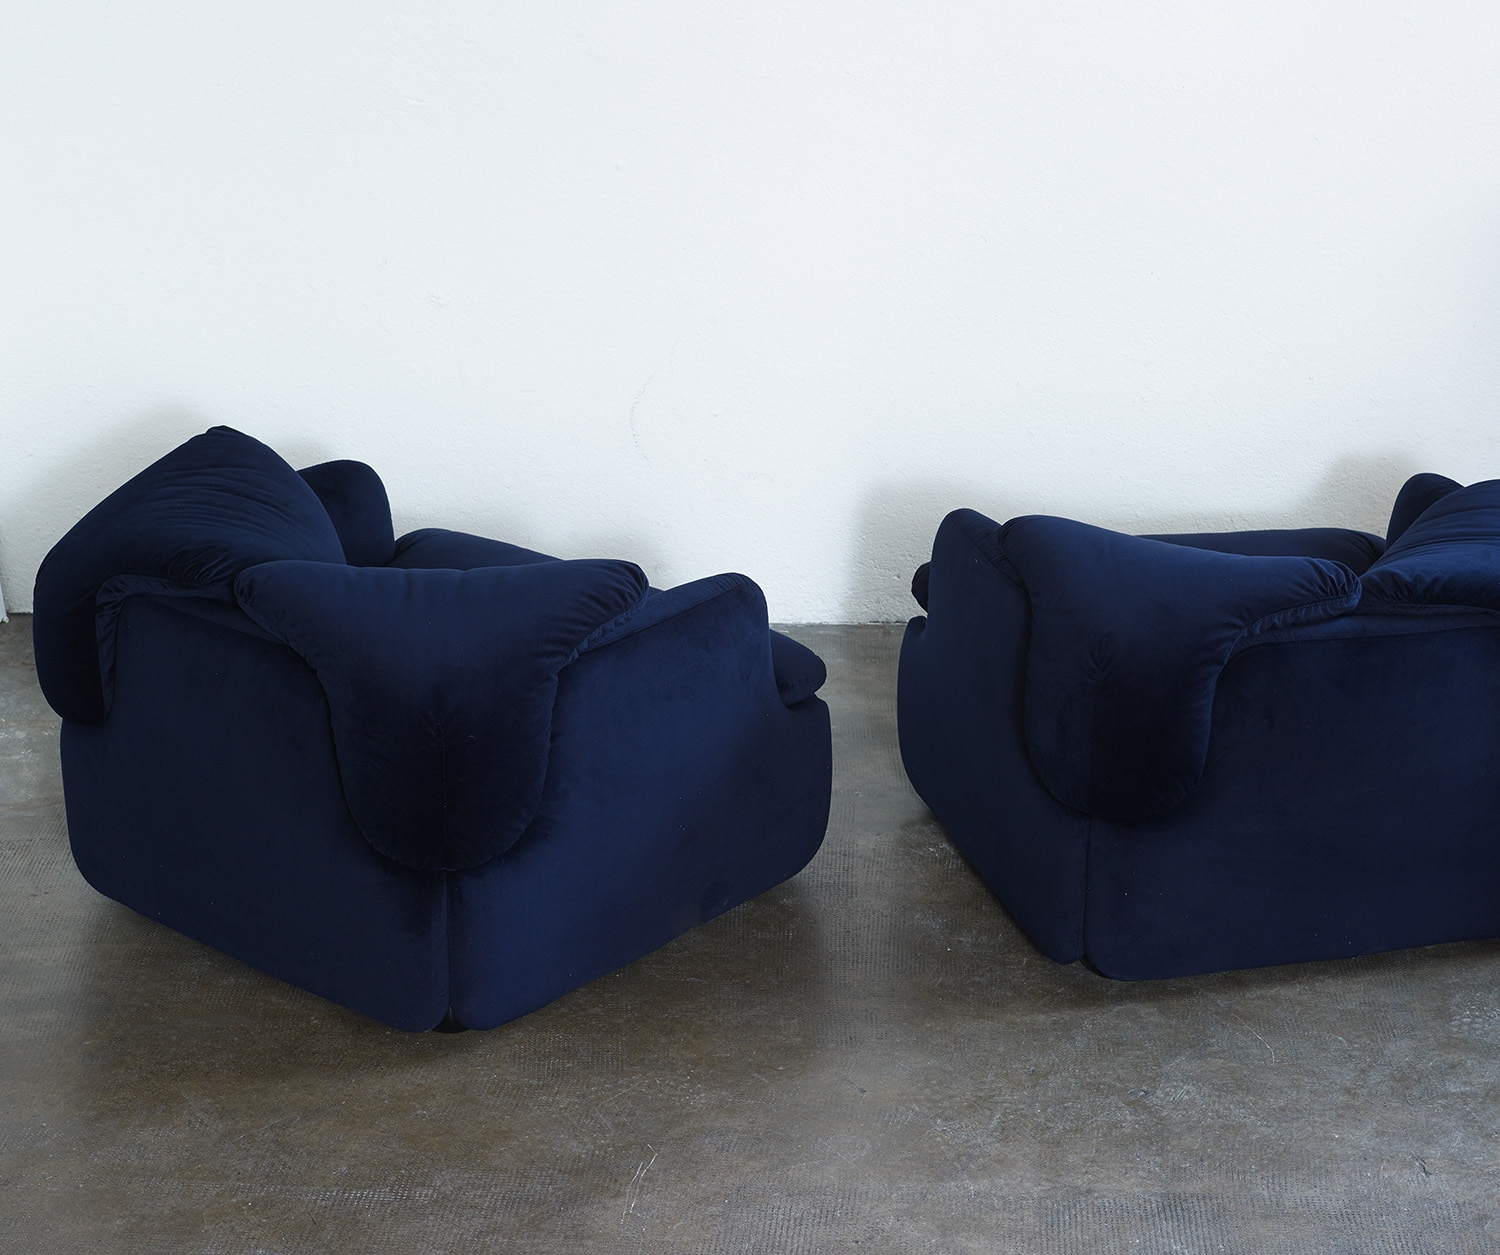 pair-of-confidential-lounge-chairs-by-alberto-rosselli-for-saporiti-1972-image-05